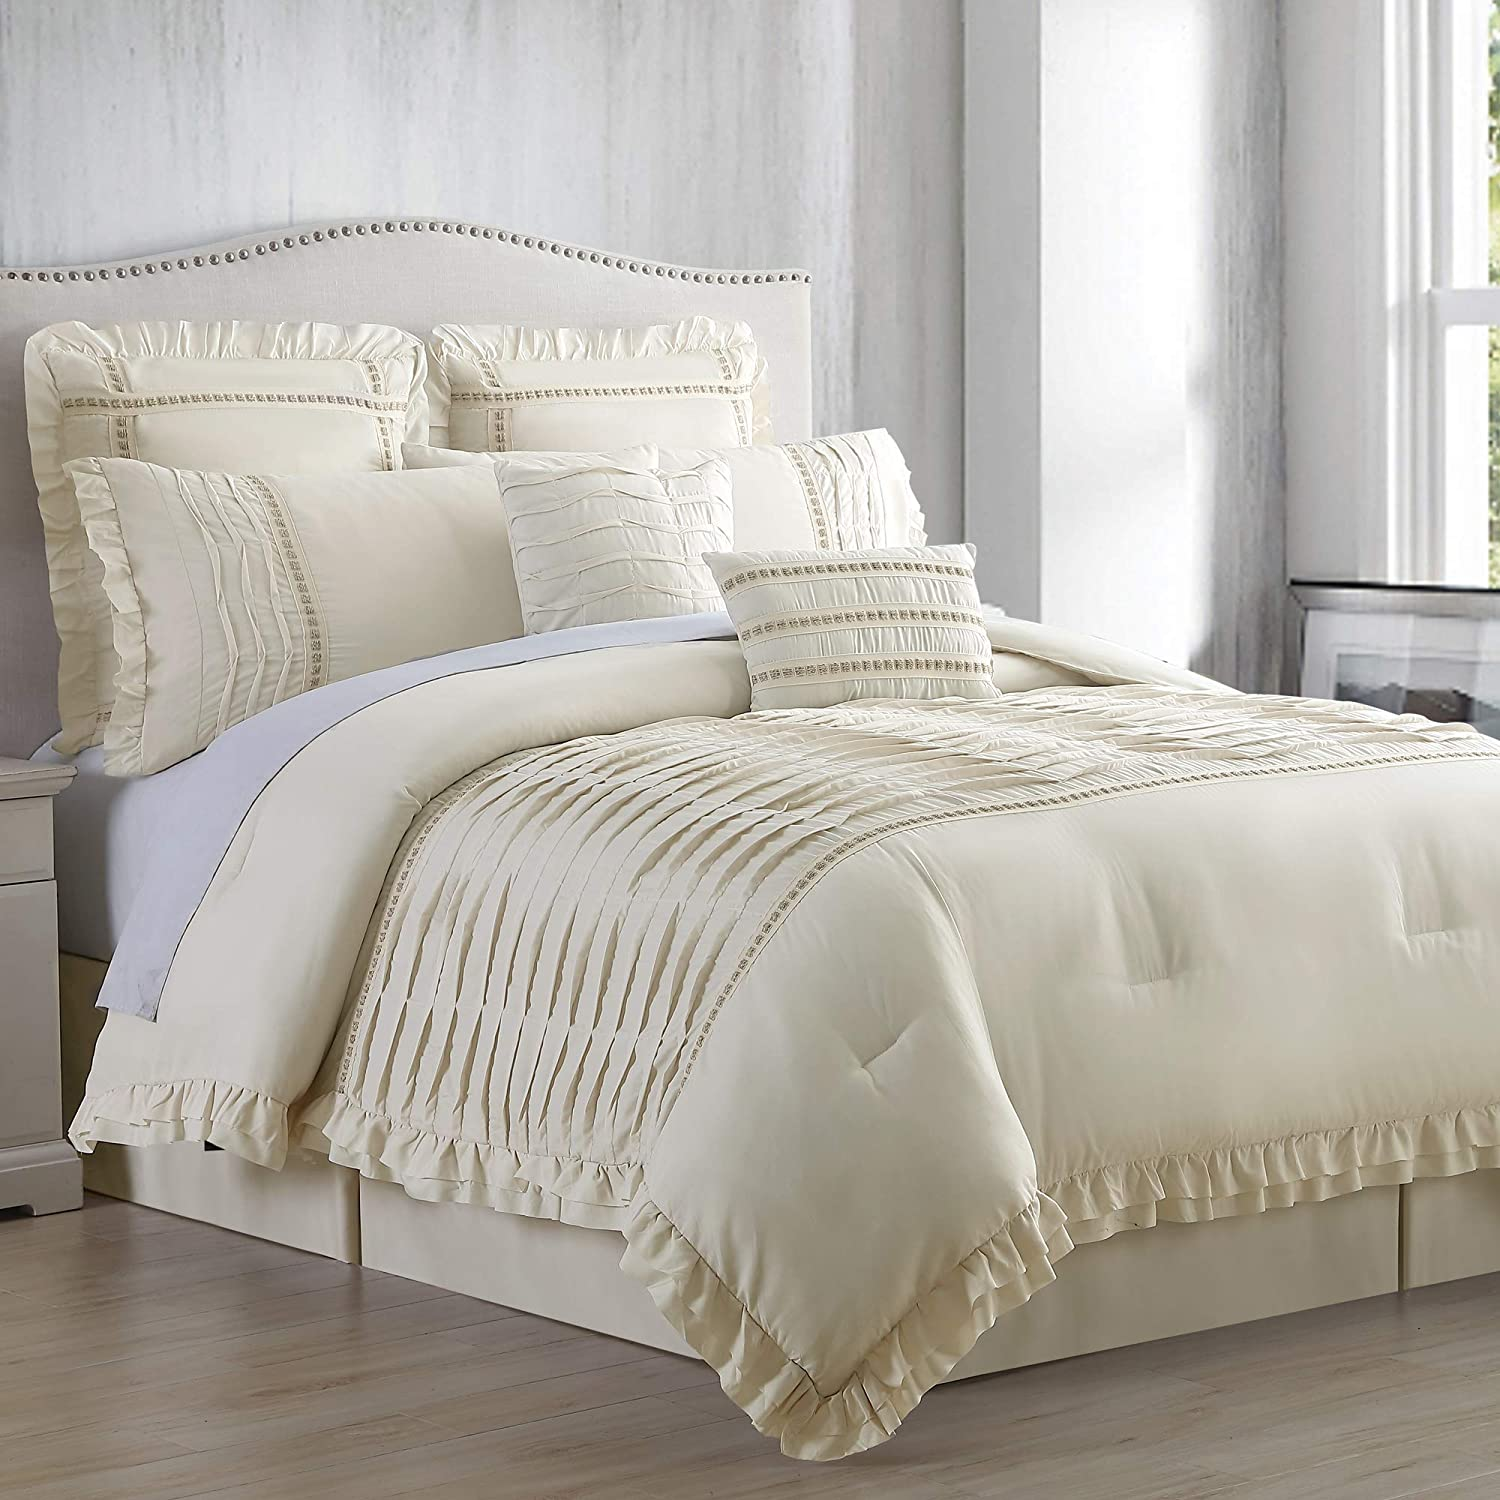 Amrapur Overseas Antonella 8-Piece Pleated (King, Sand) Comforter Set, Beige